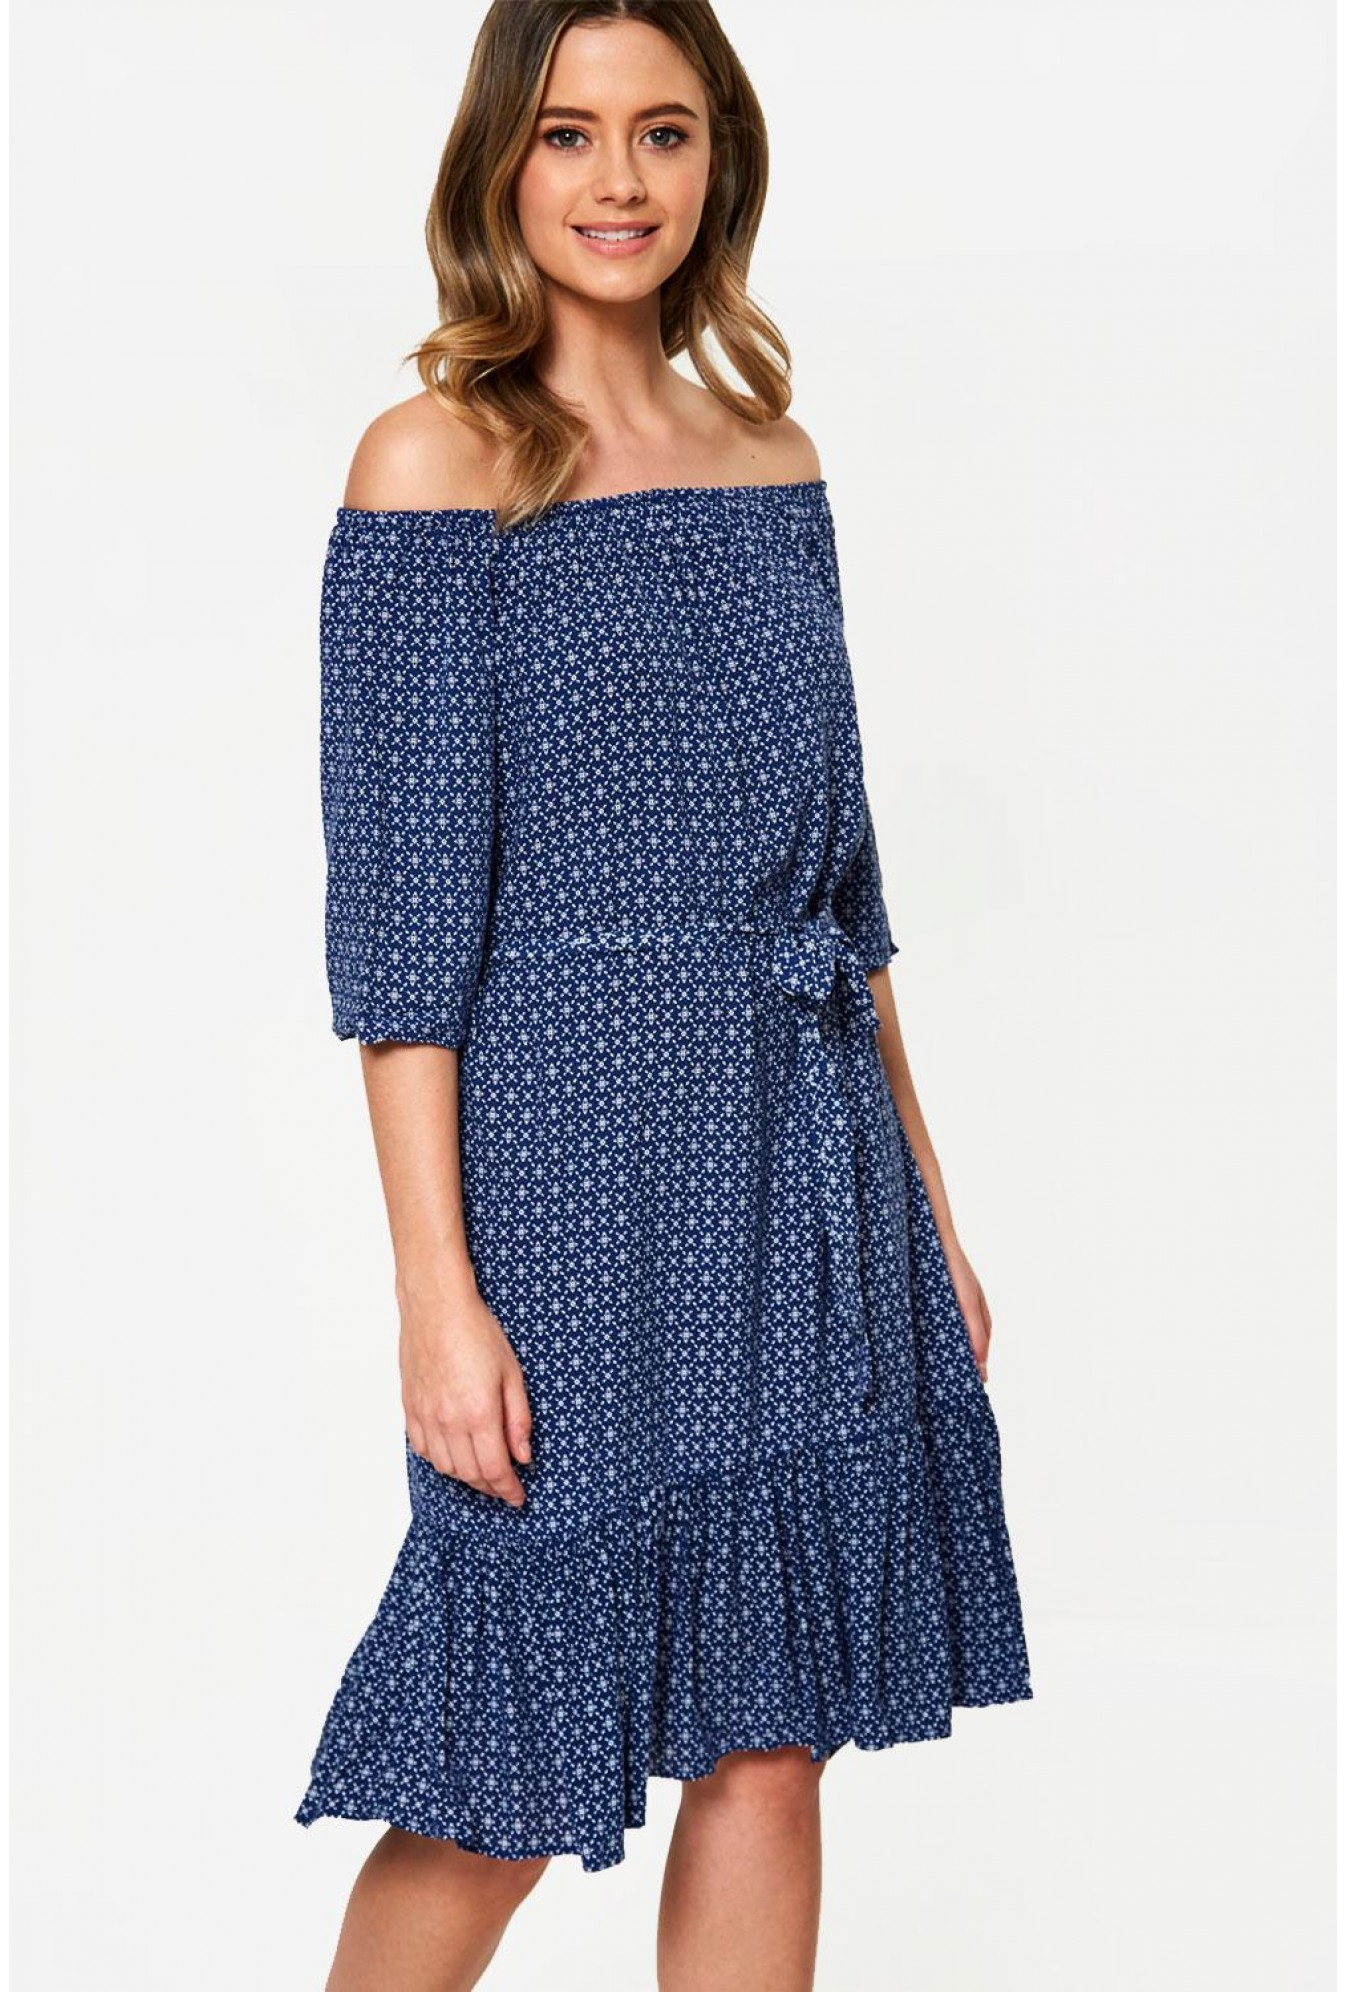 4795b5ab2a7 Printed Off Shoulder Dress in Navy